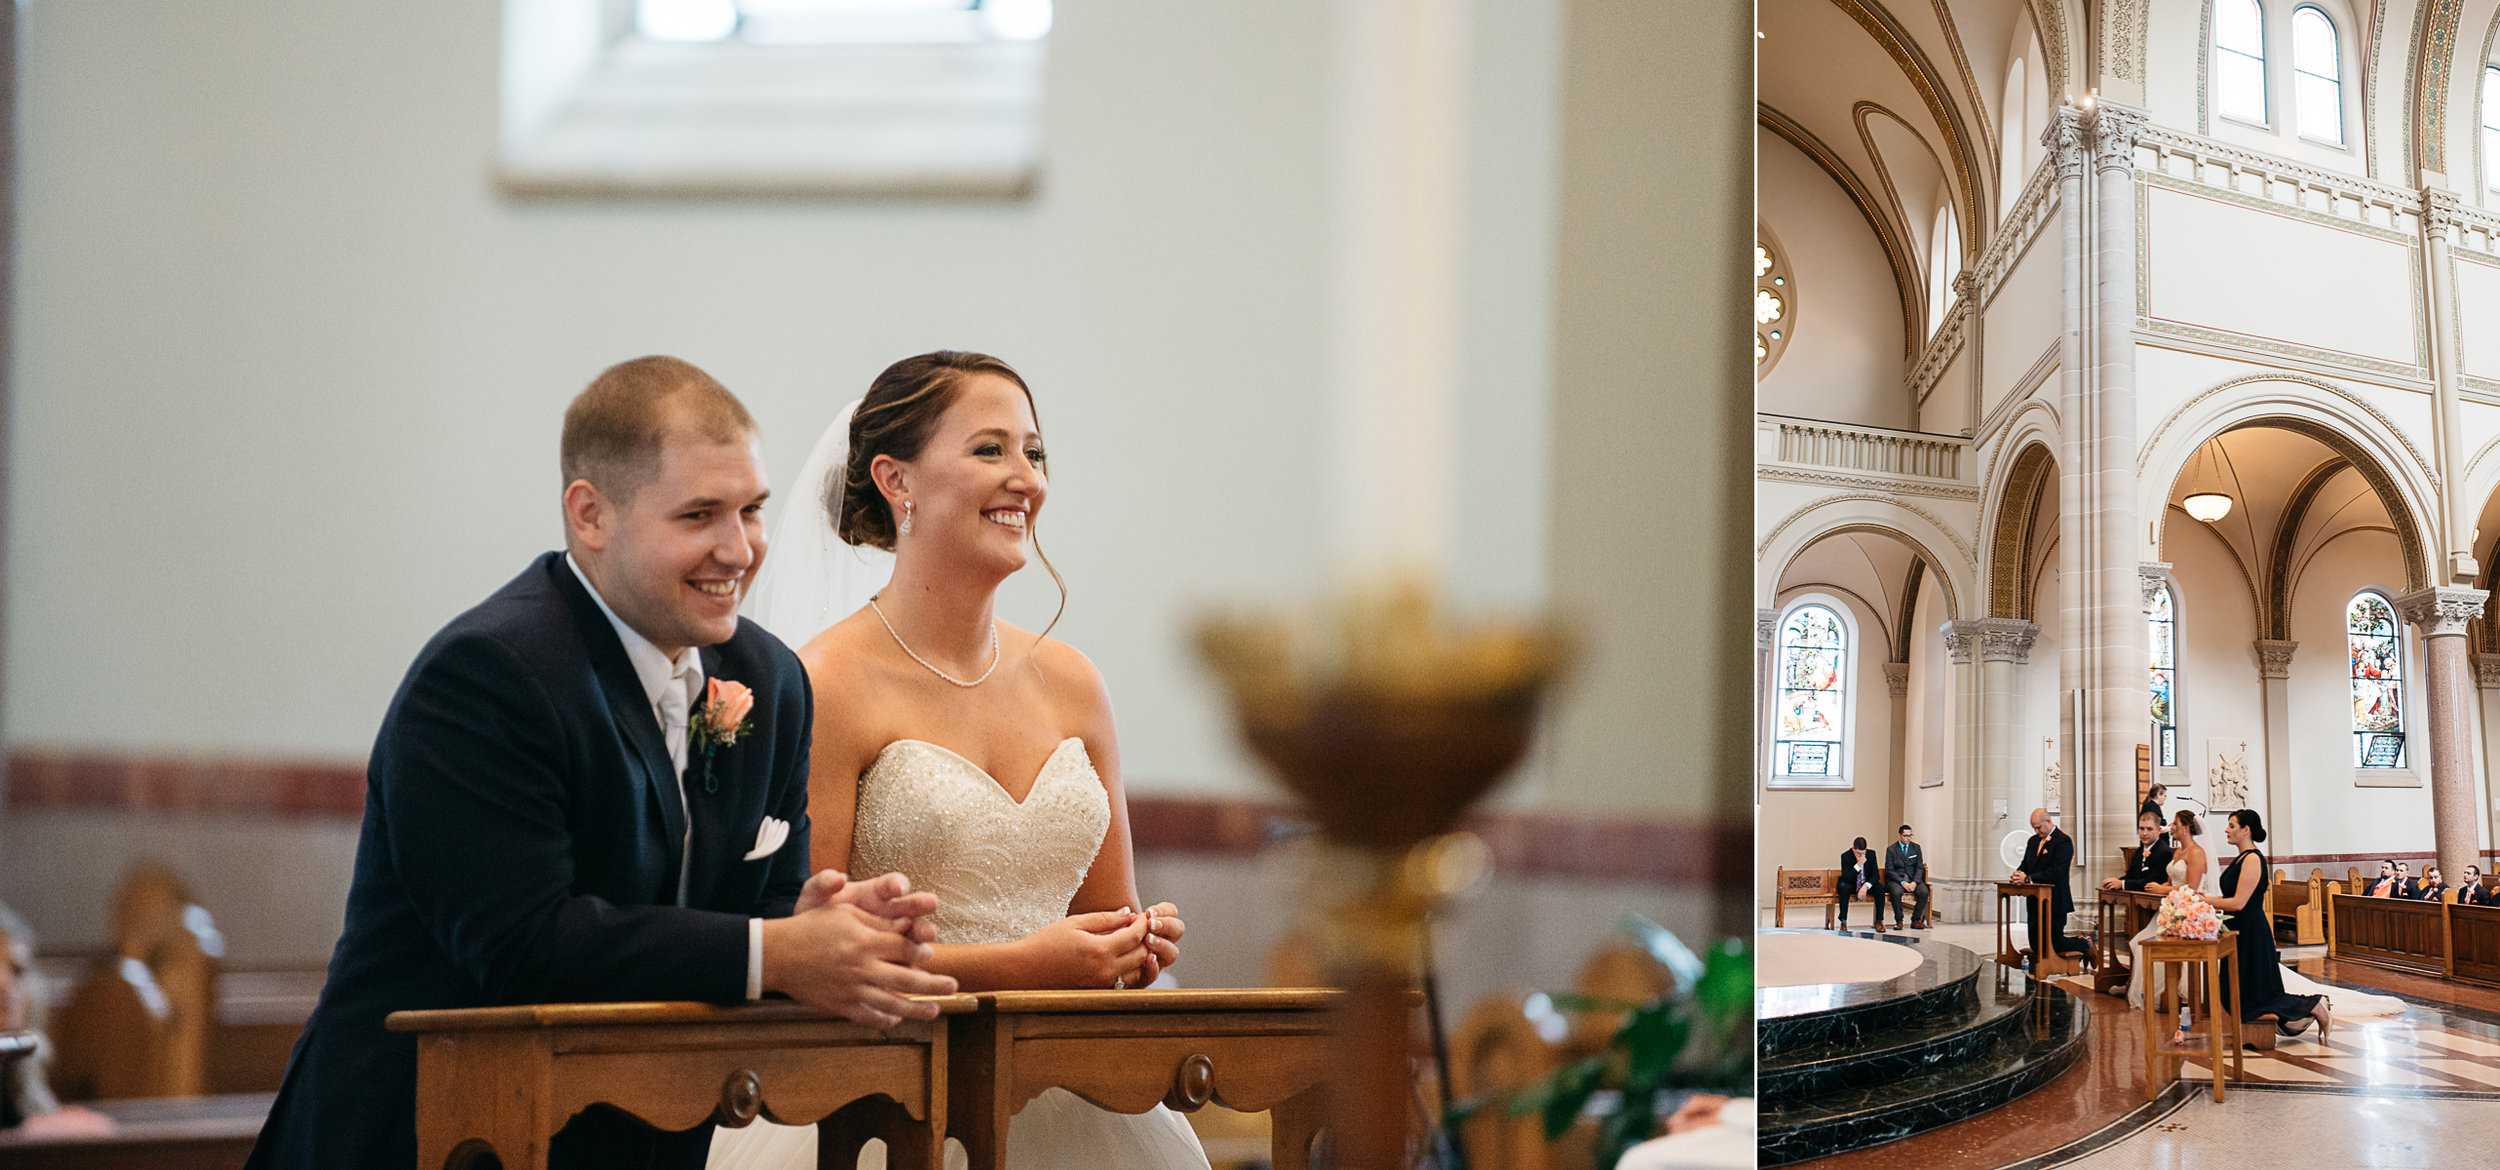 st vincent cathedral wedding mariah fisher photography.jpg